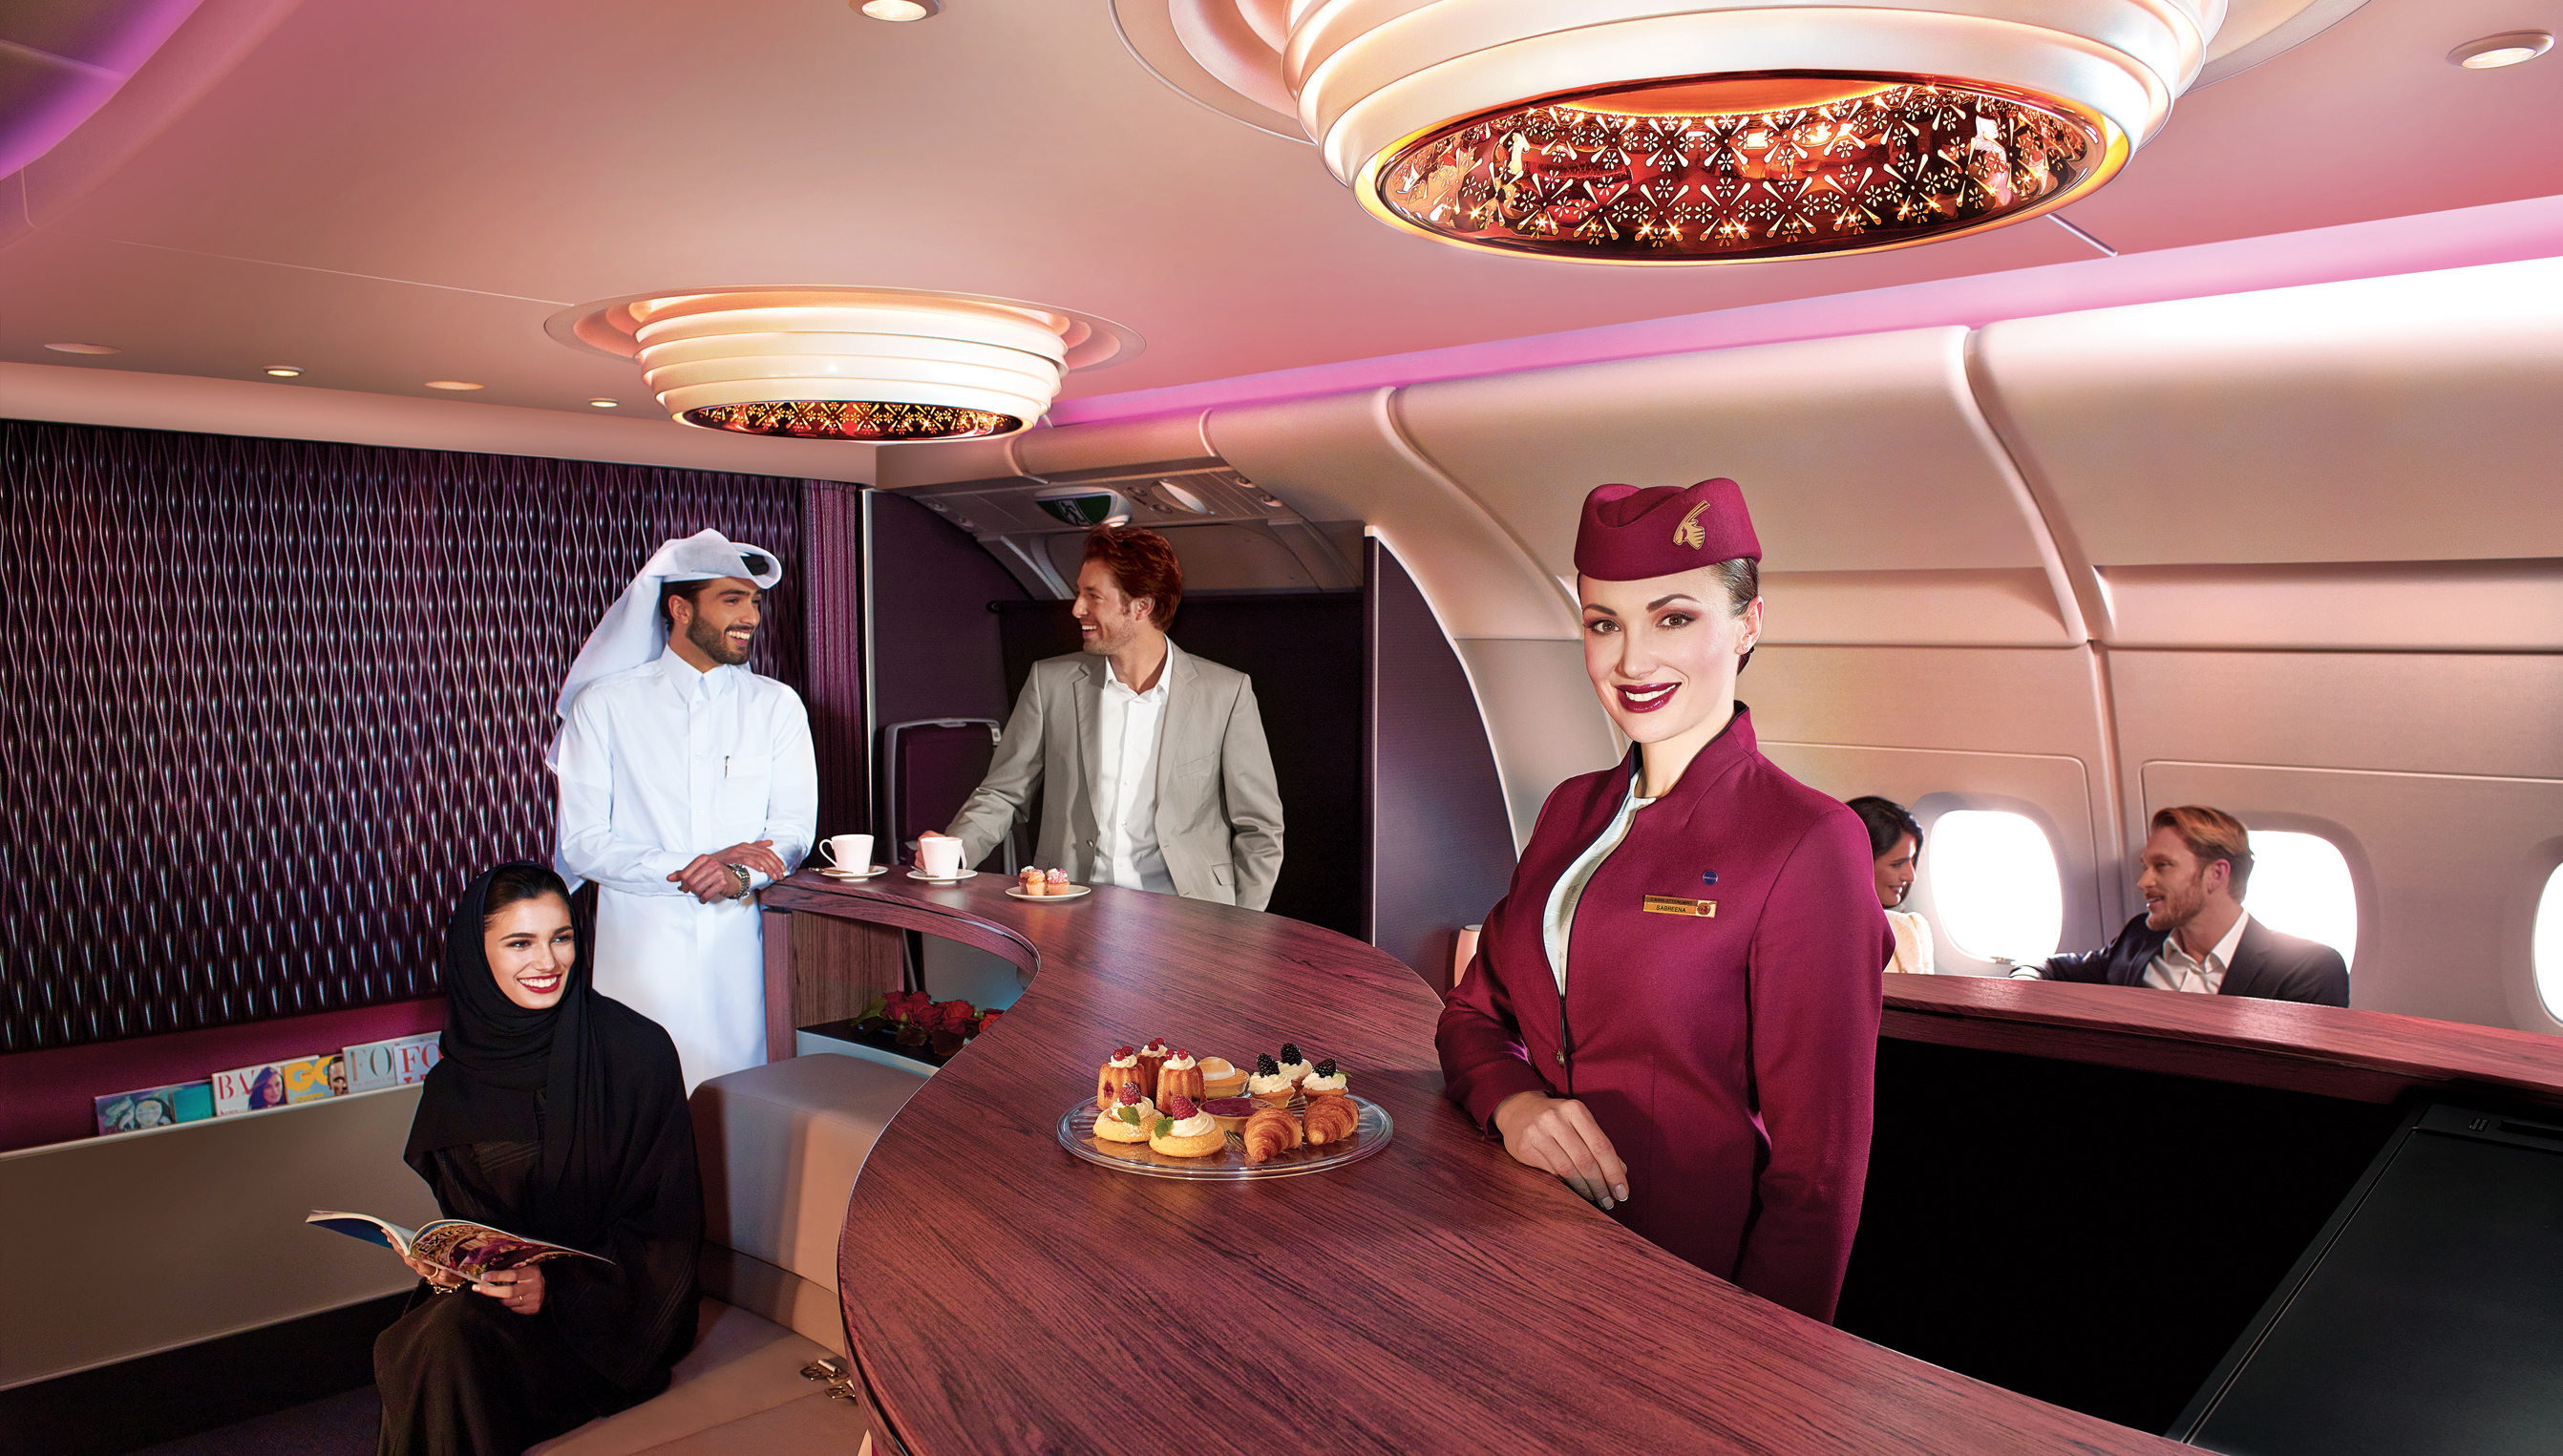 Premium passengers can relax at the aircraft's lounge and bar during flights.